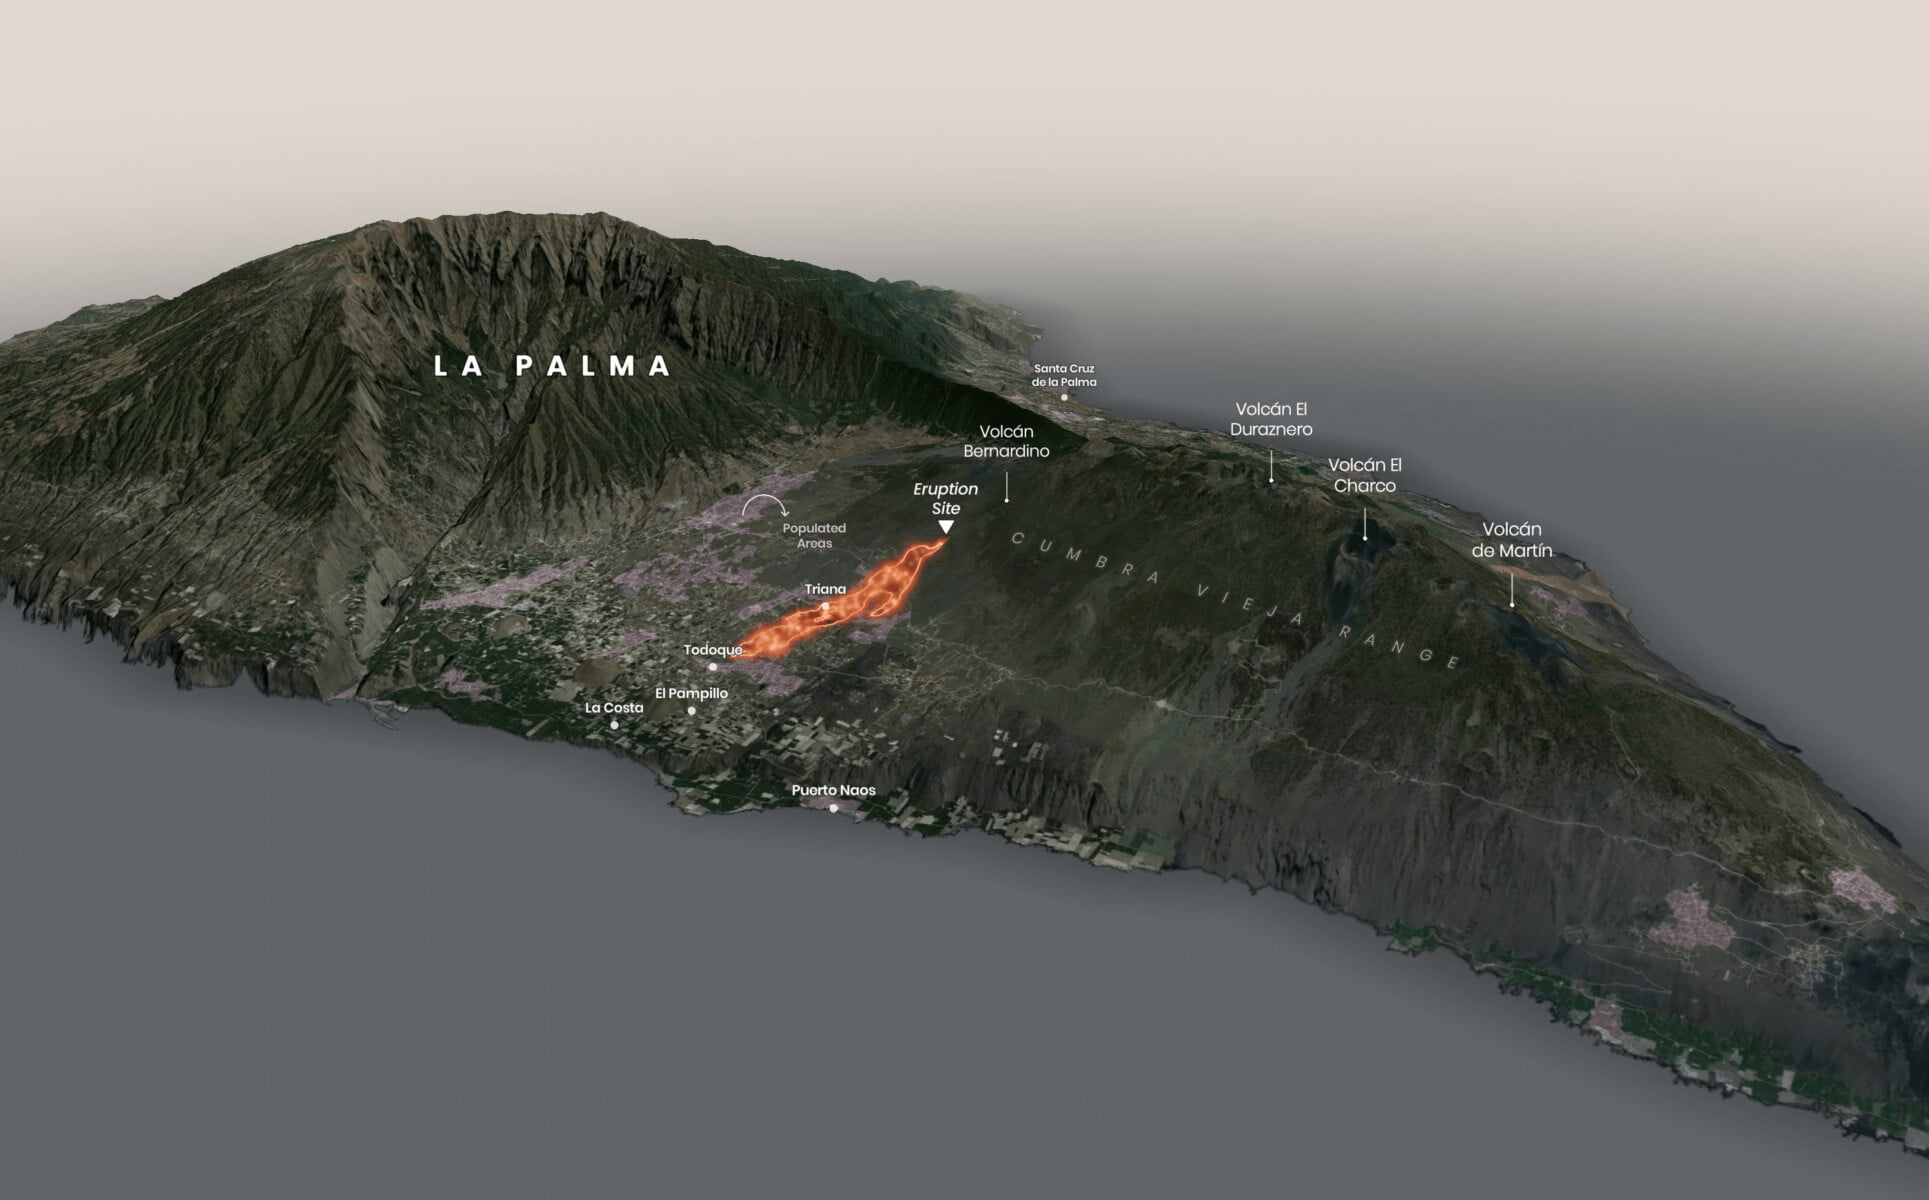 280 new houses to be bought for La Palma evacuees as Volcano continues to erupt